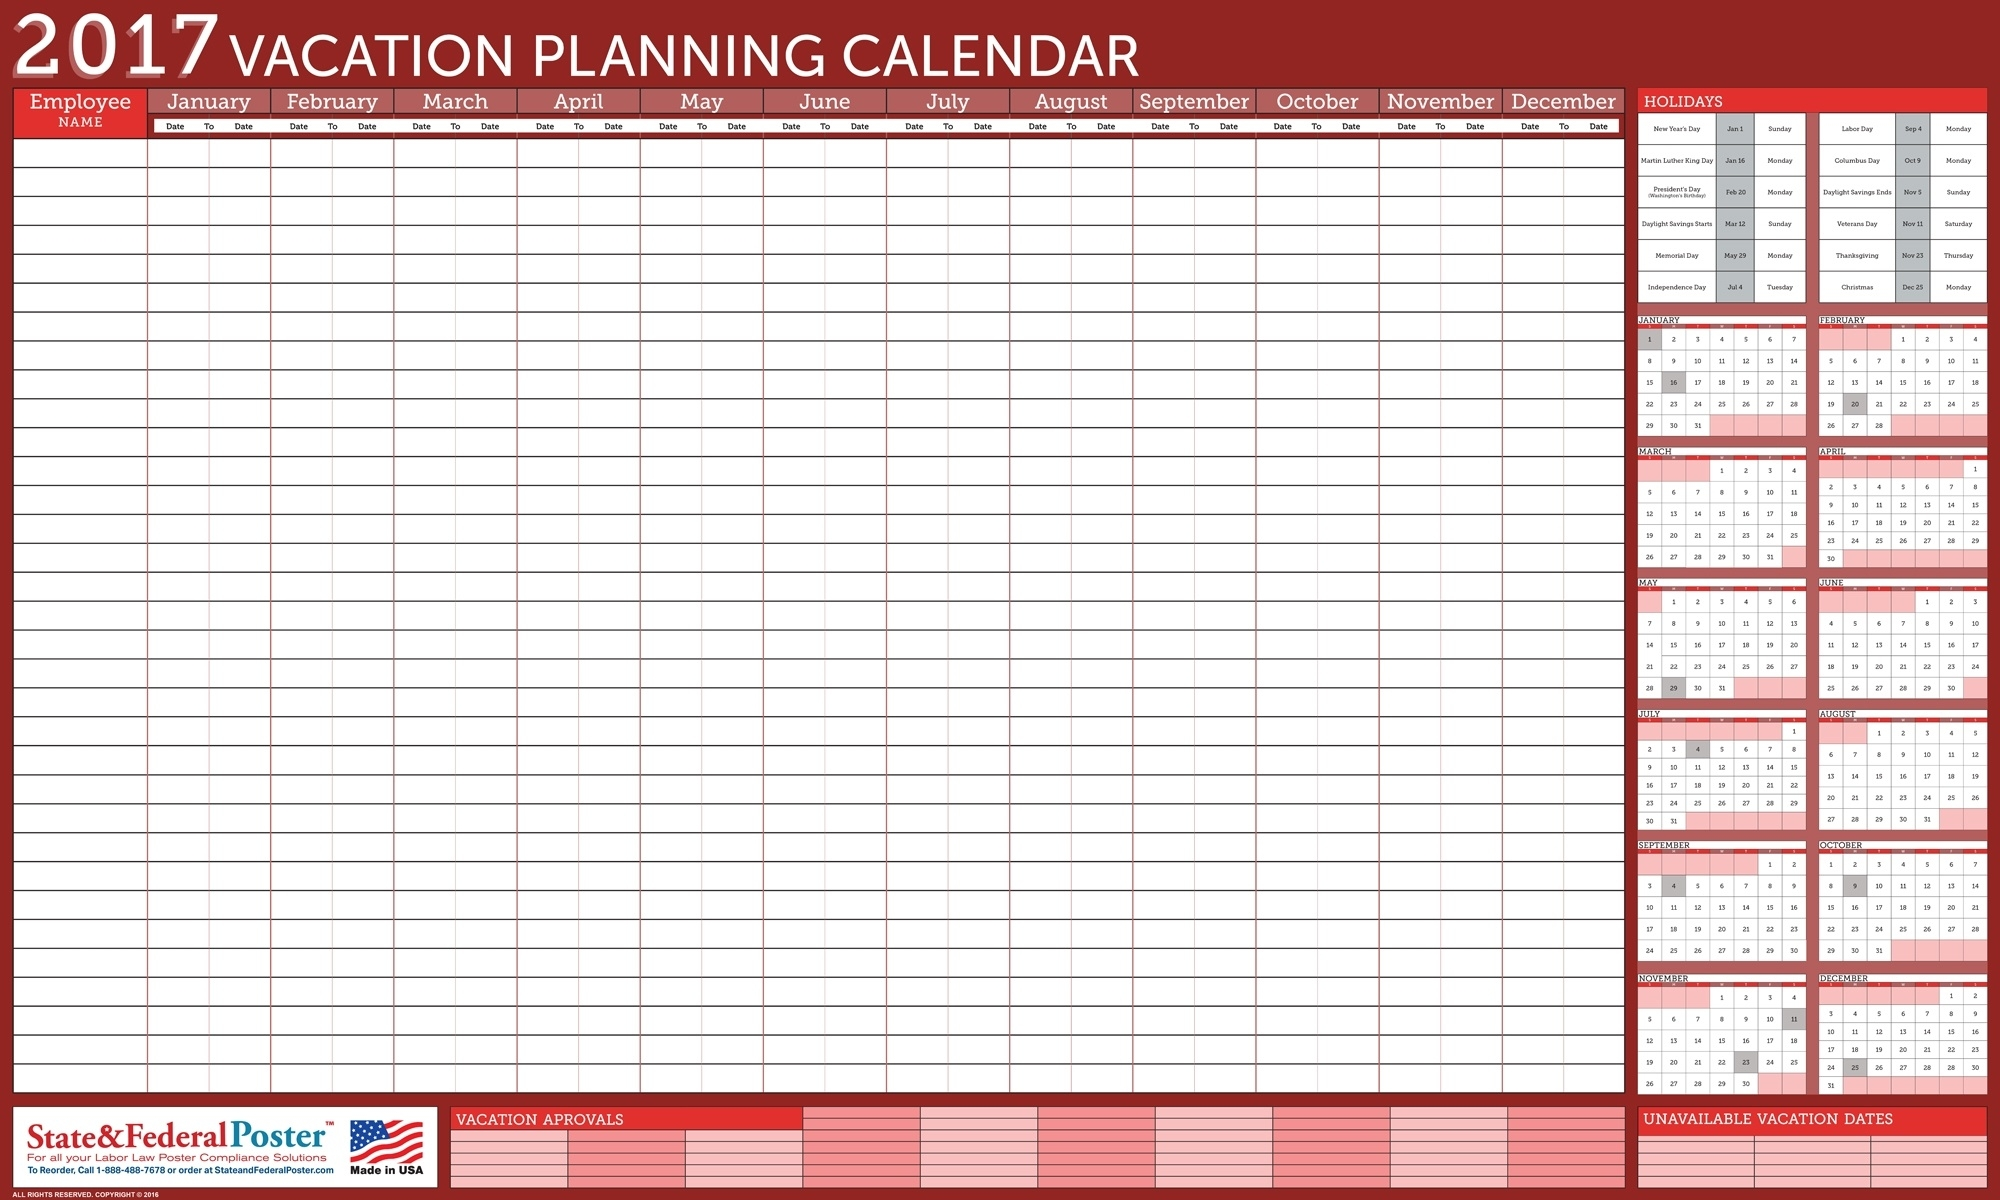 Vacation Calendar Planner - Yeniscale.co  Year At A Glance Calendar - Vacation Schedule For Staff